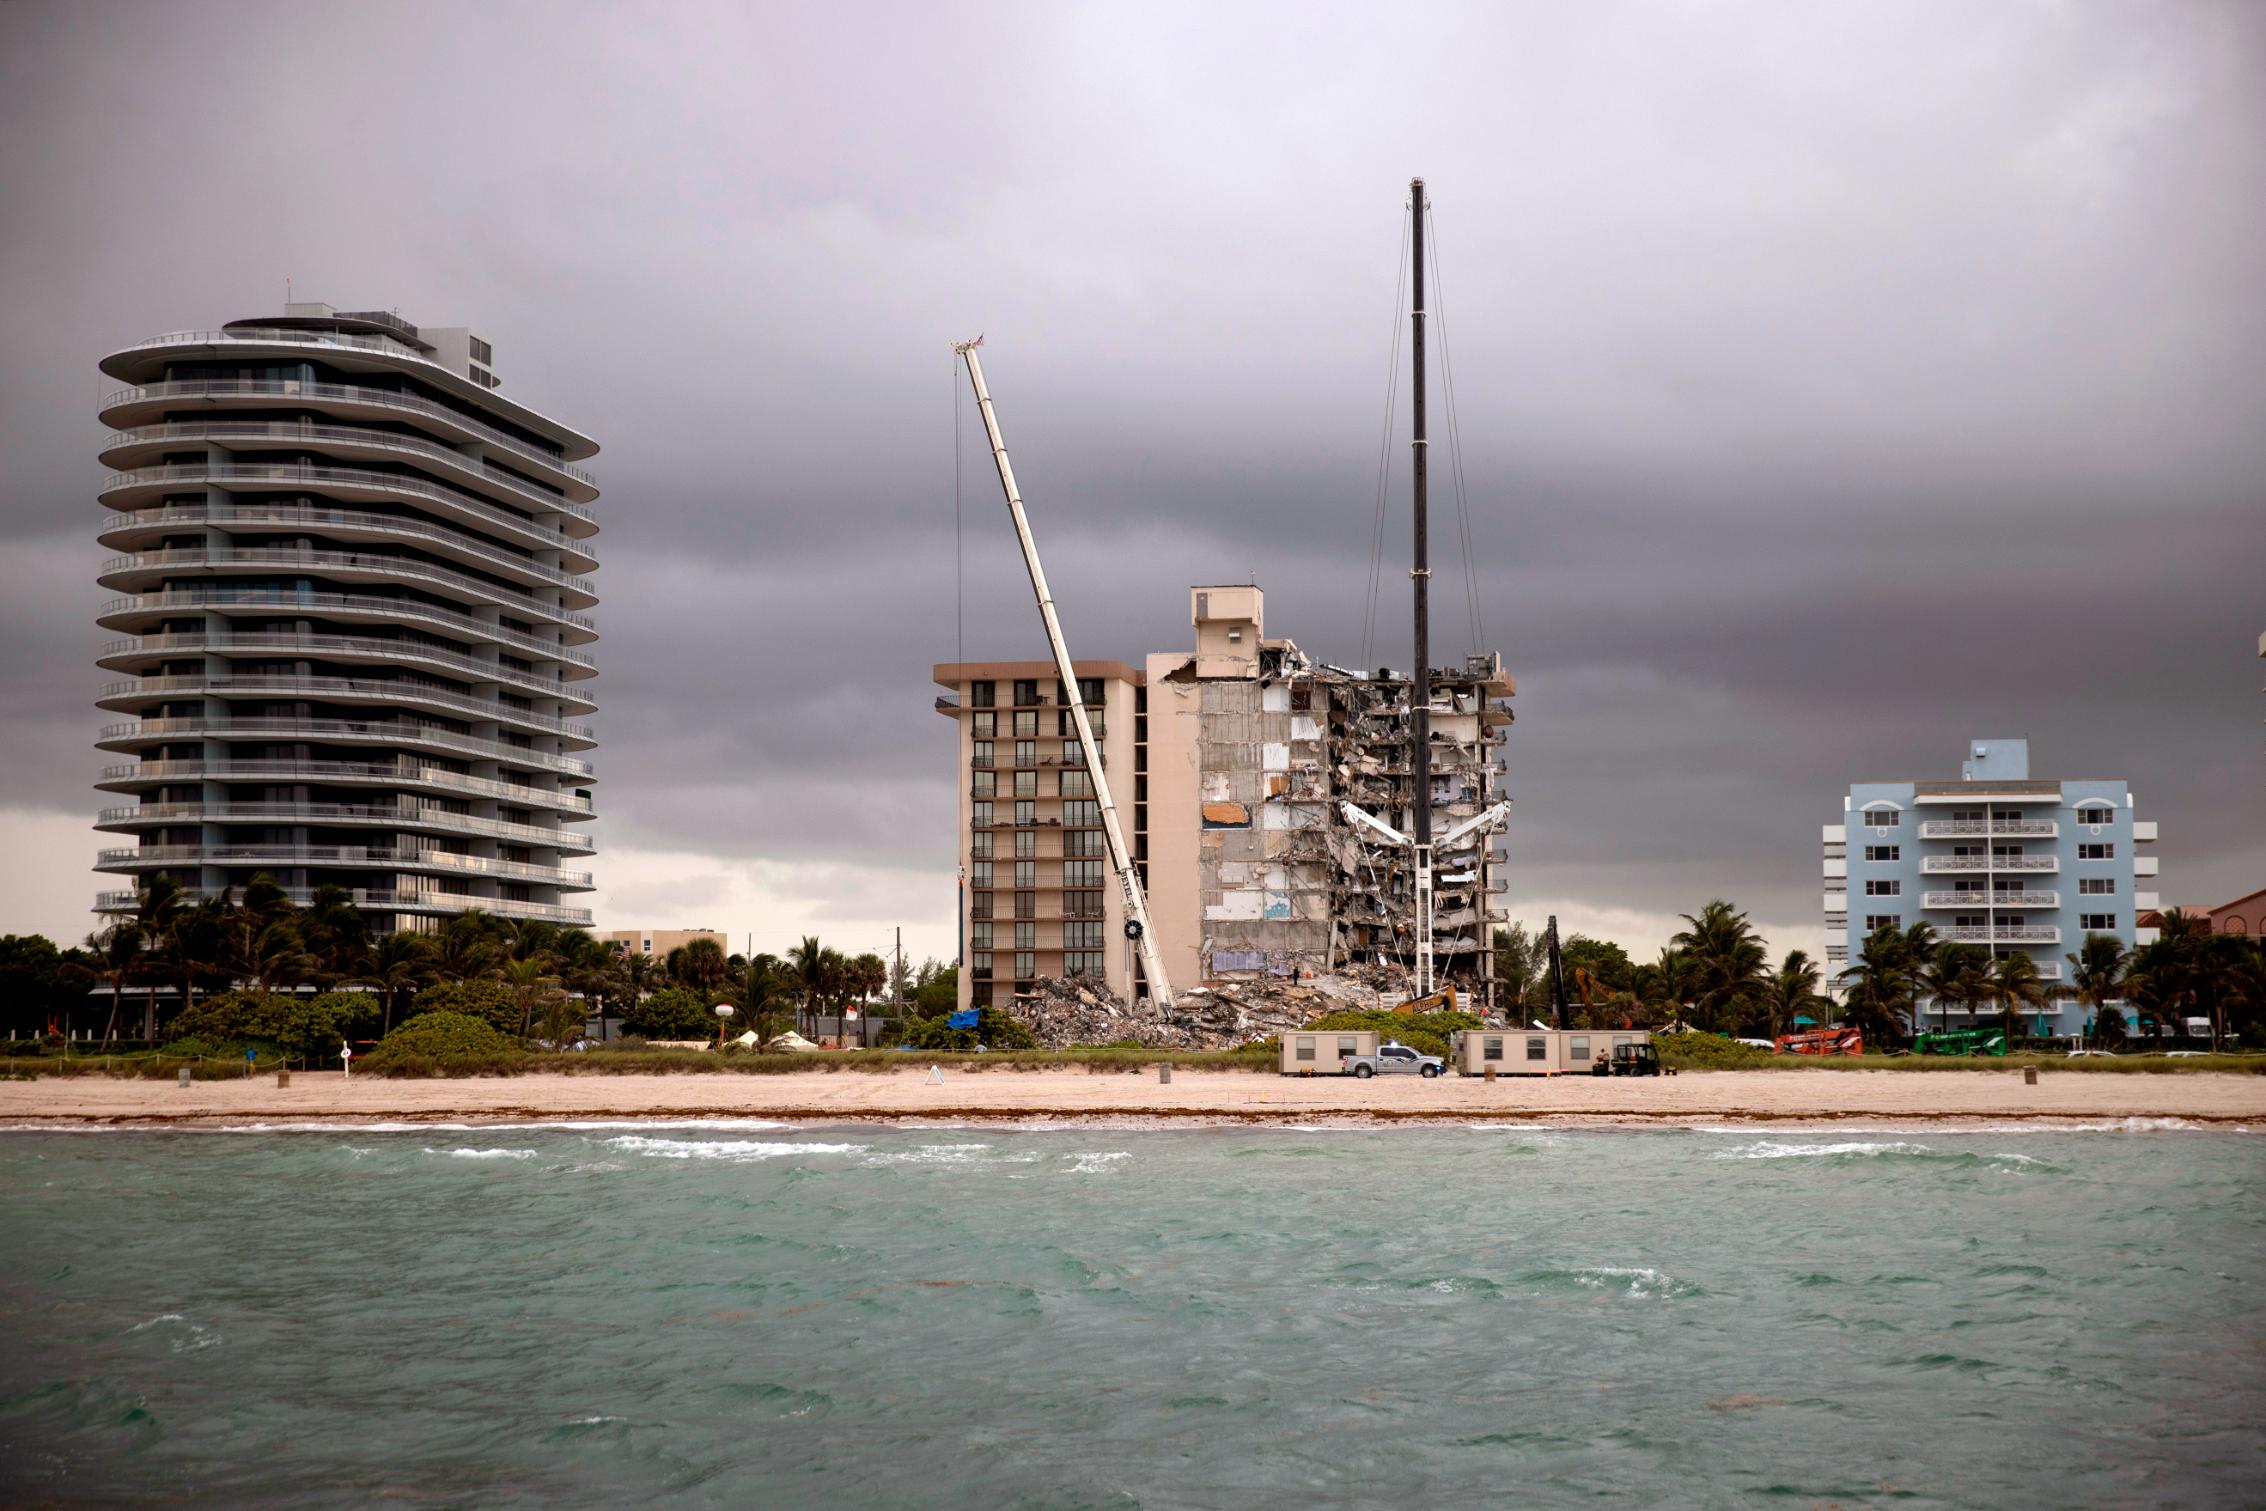 'Shaking all the time:' Surfside condo owners complained of luxury tower being built next door